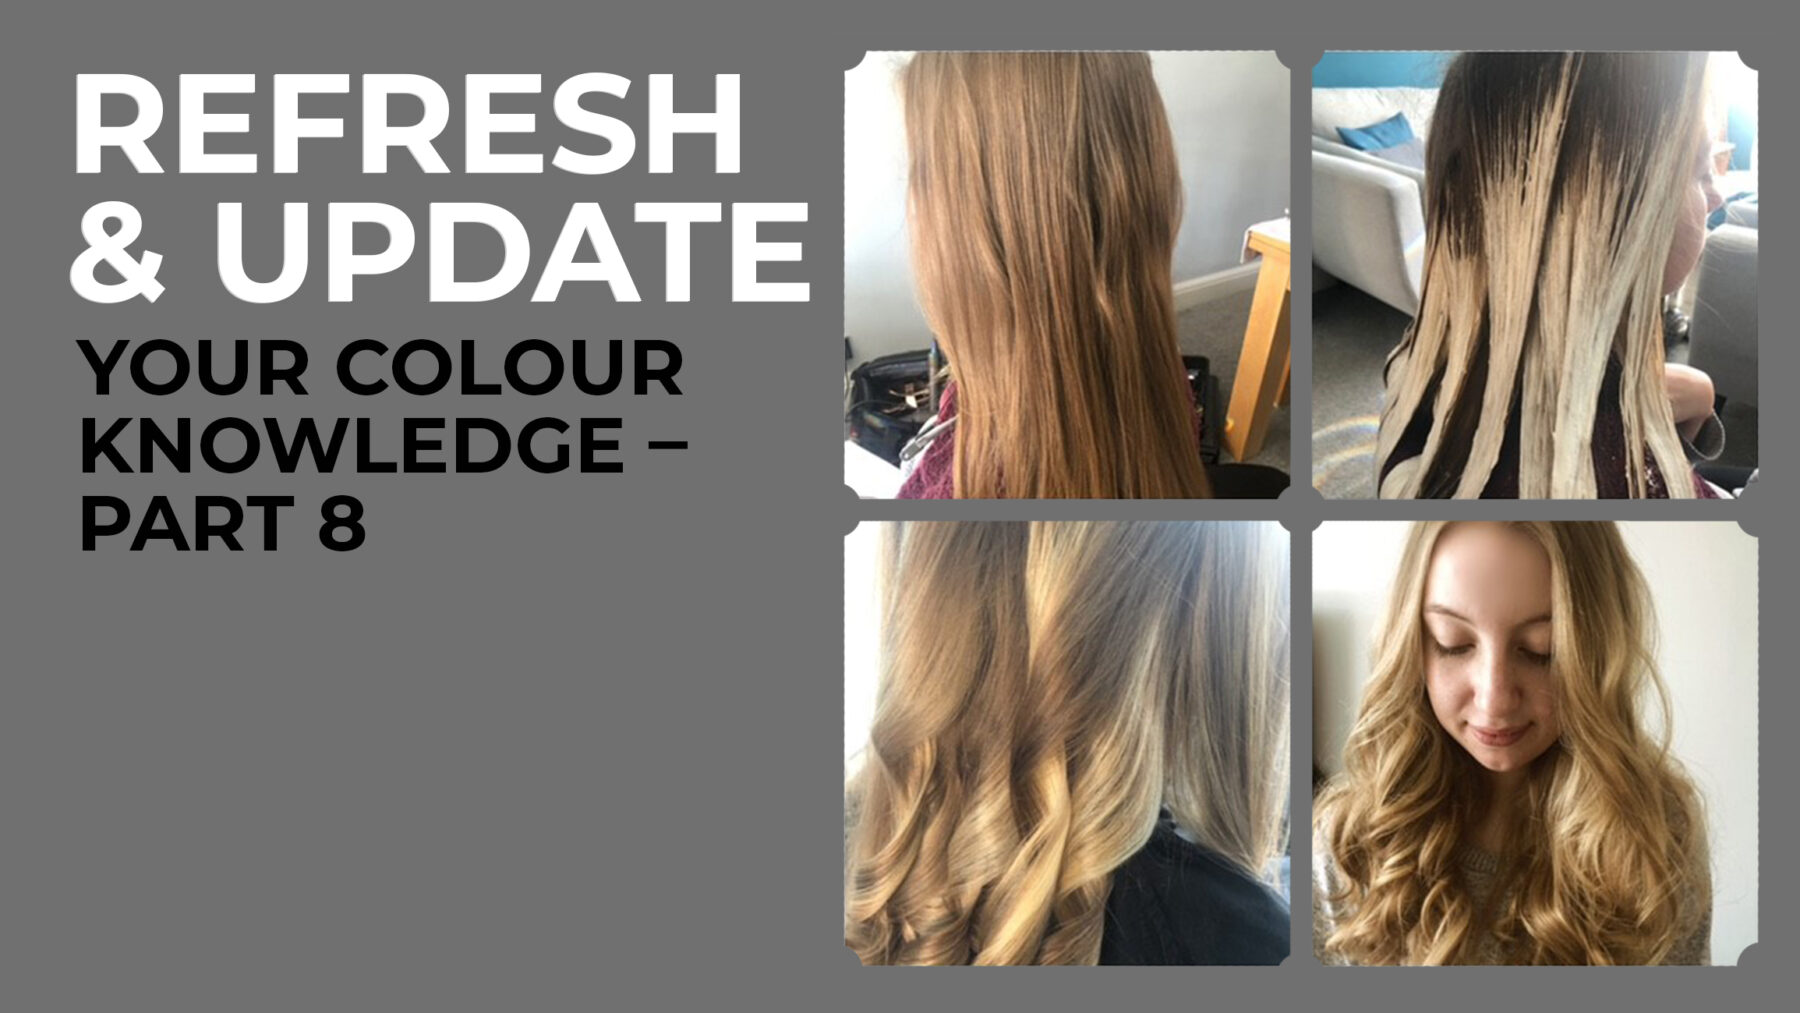 Refresh & Update your Colour Knowledge Part 8